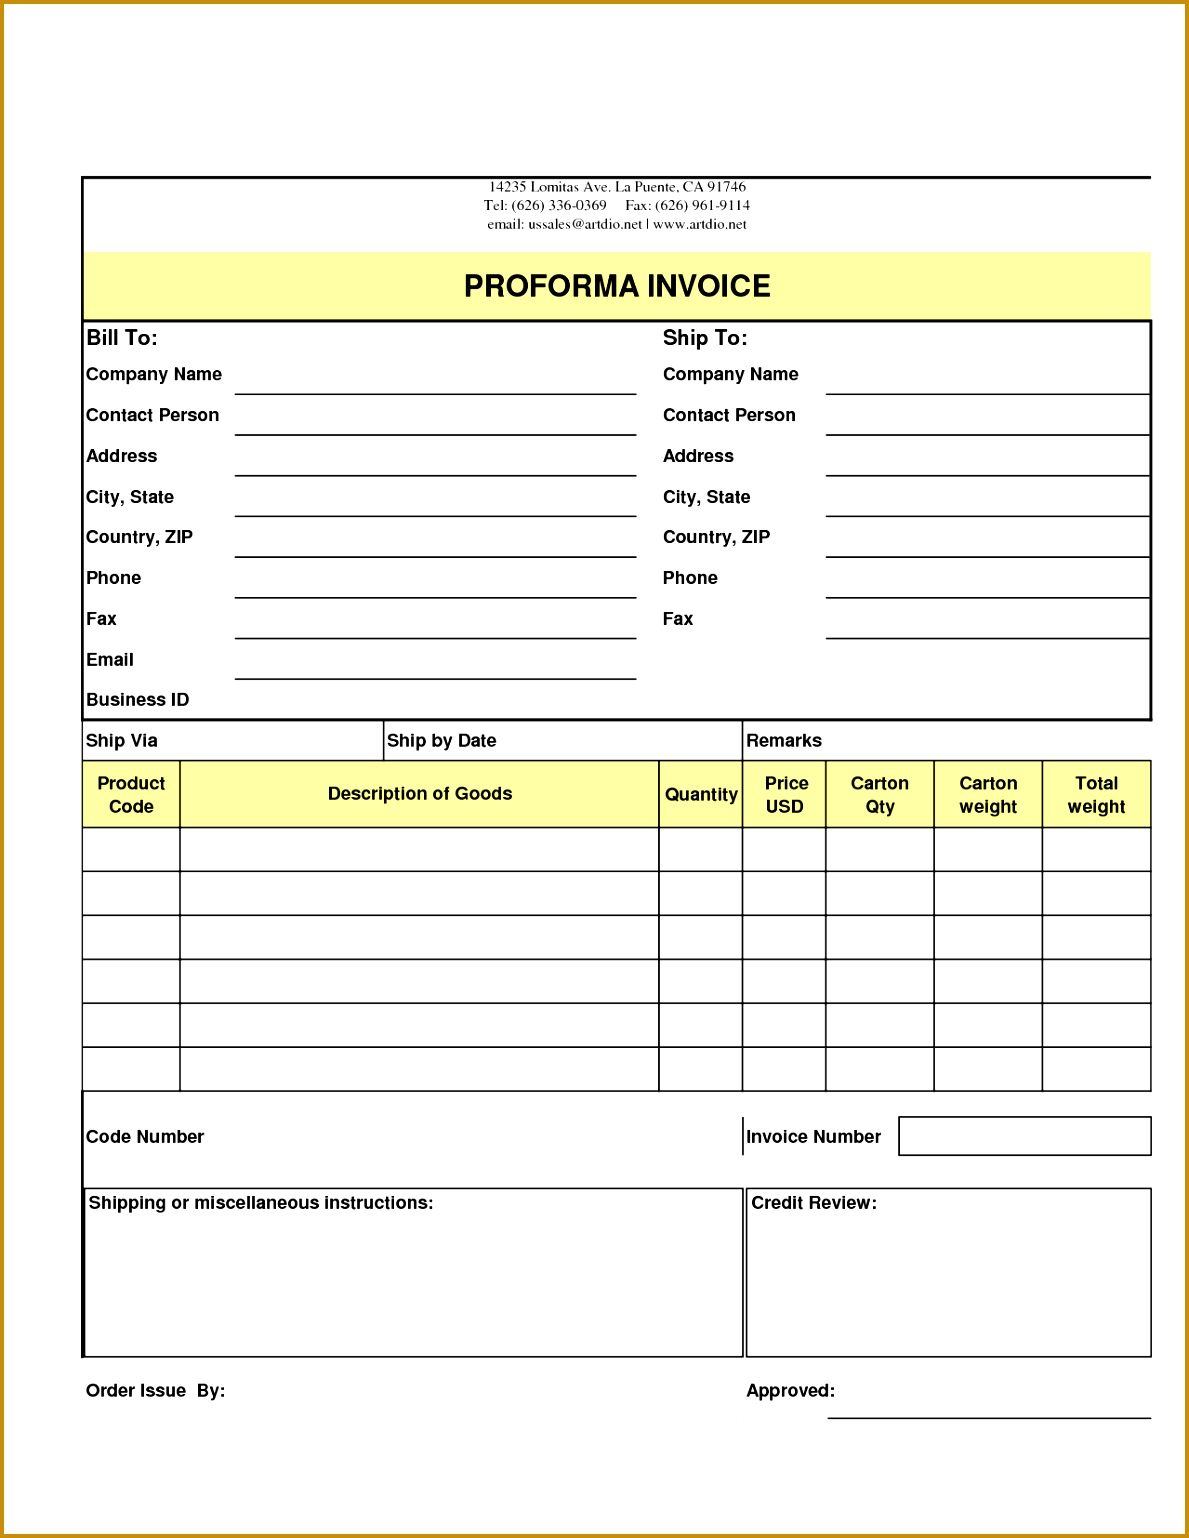 5 order form template excel 15381189